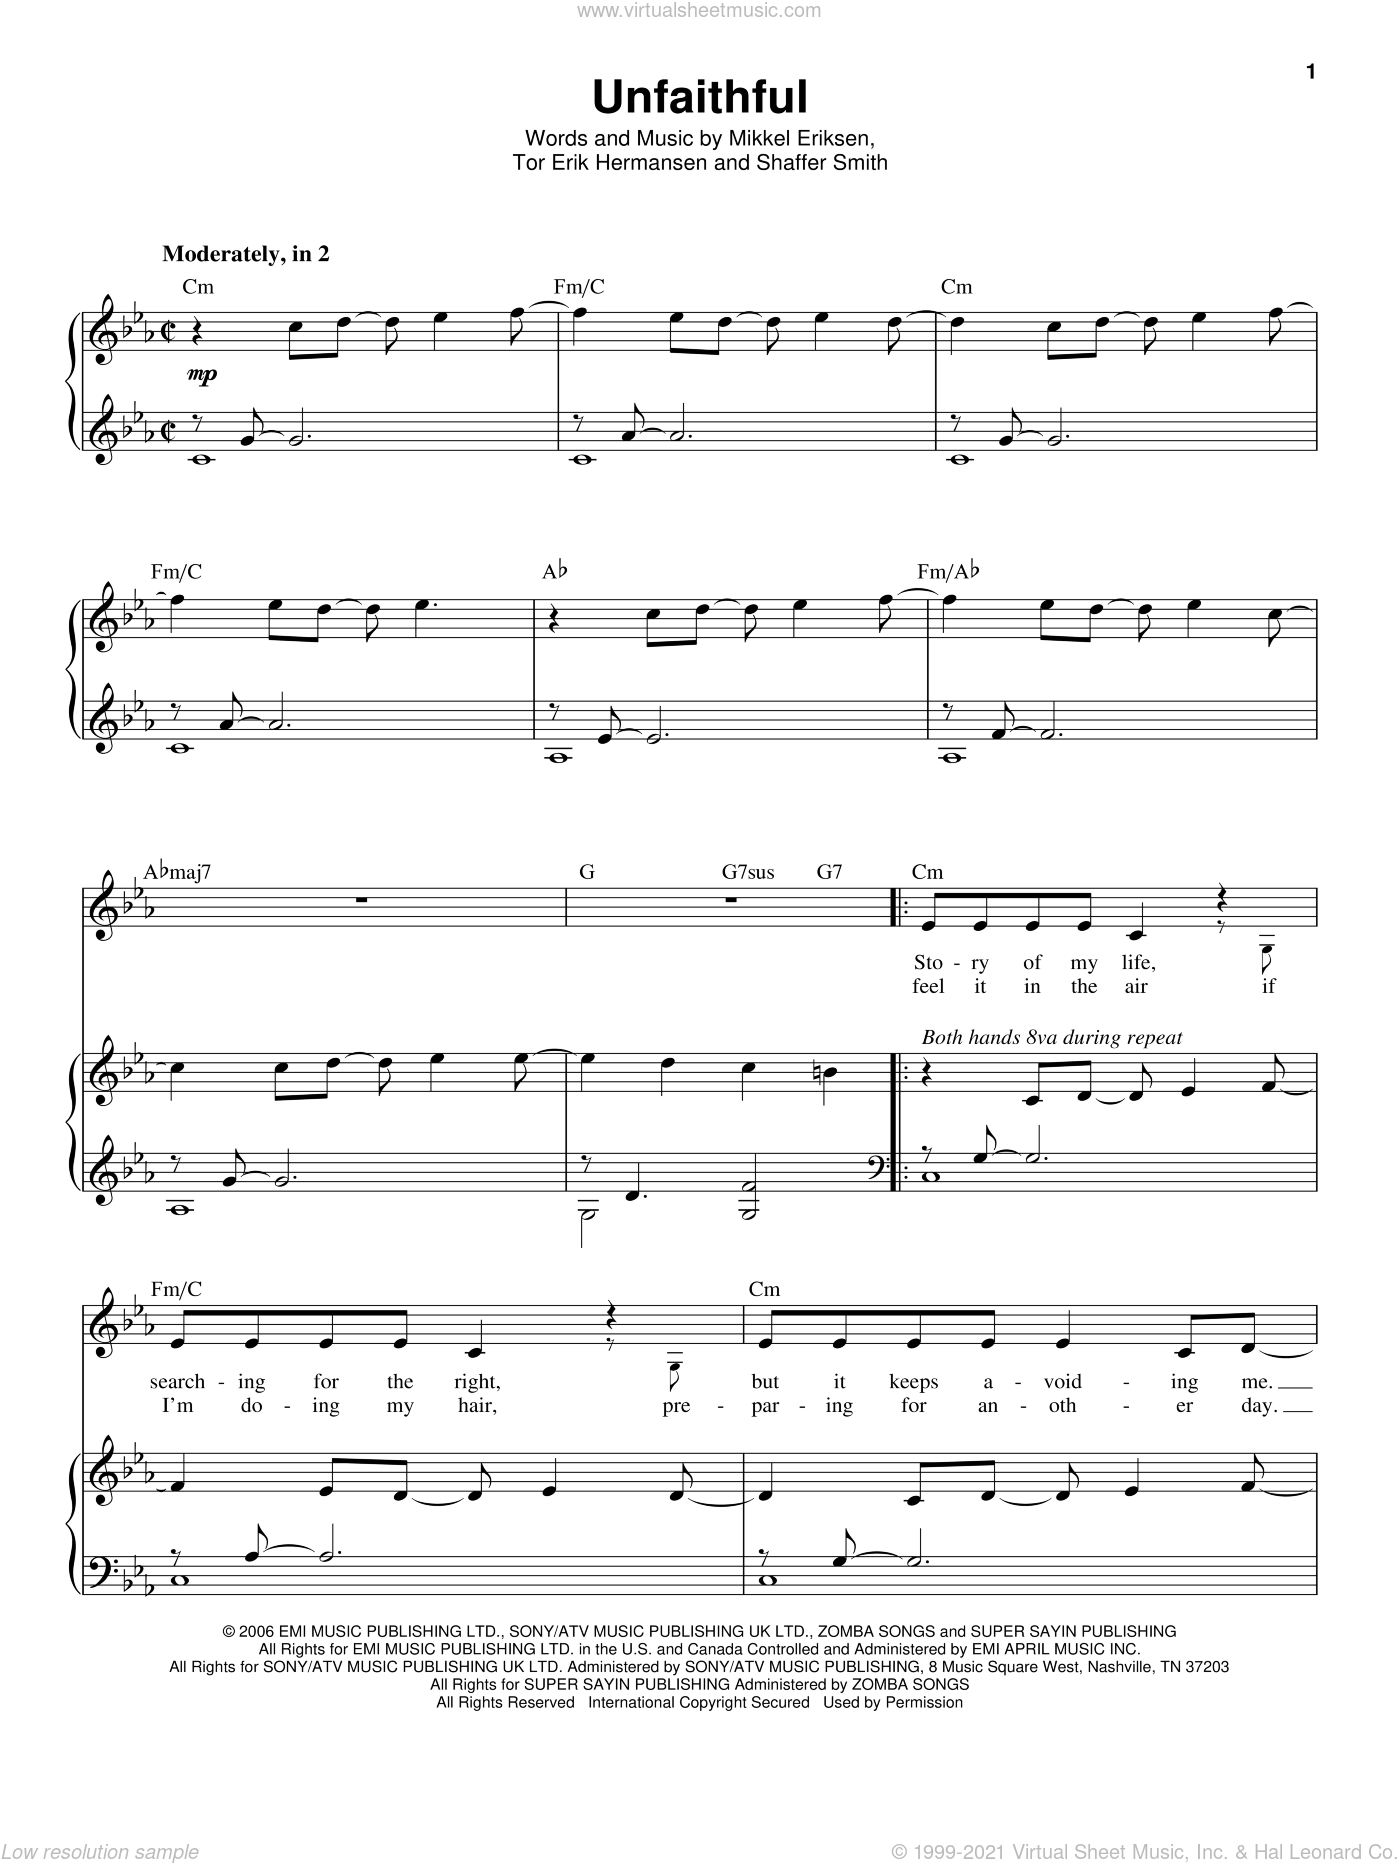 Unfaithful sheet music for voice and piano by Tor Erik Hermansen